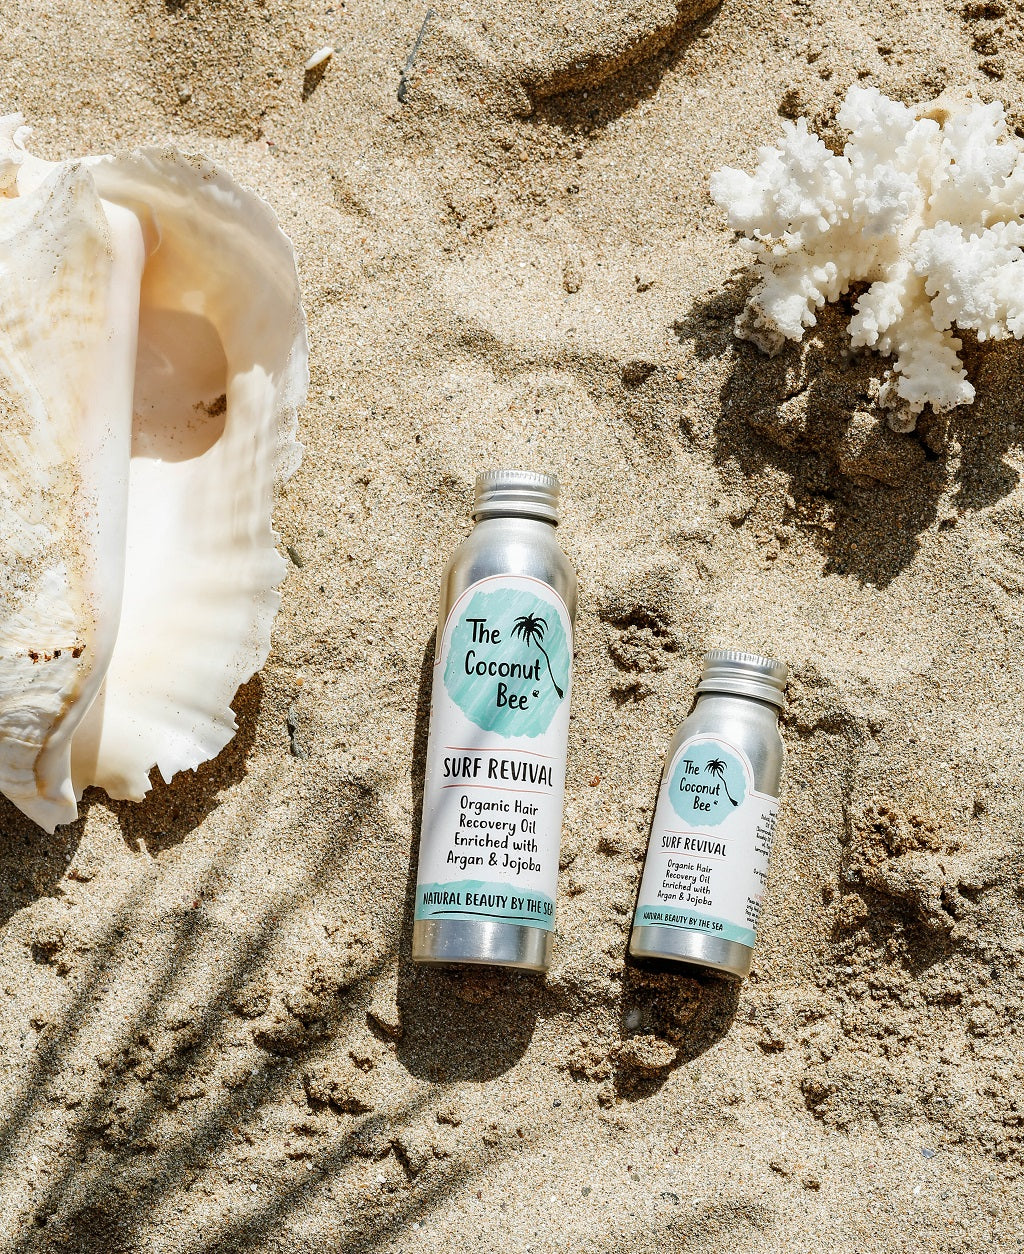 Surf Revival - Argan & Jojoba Repair Oil